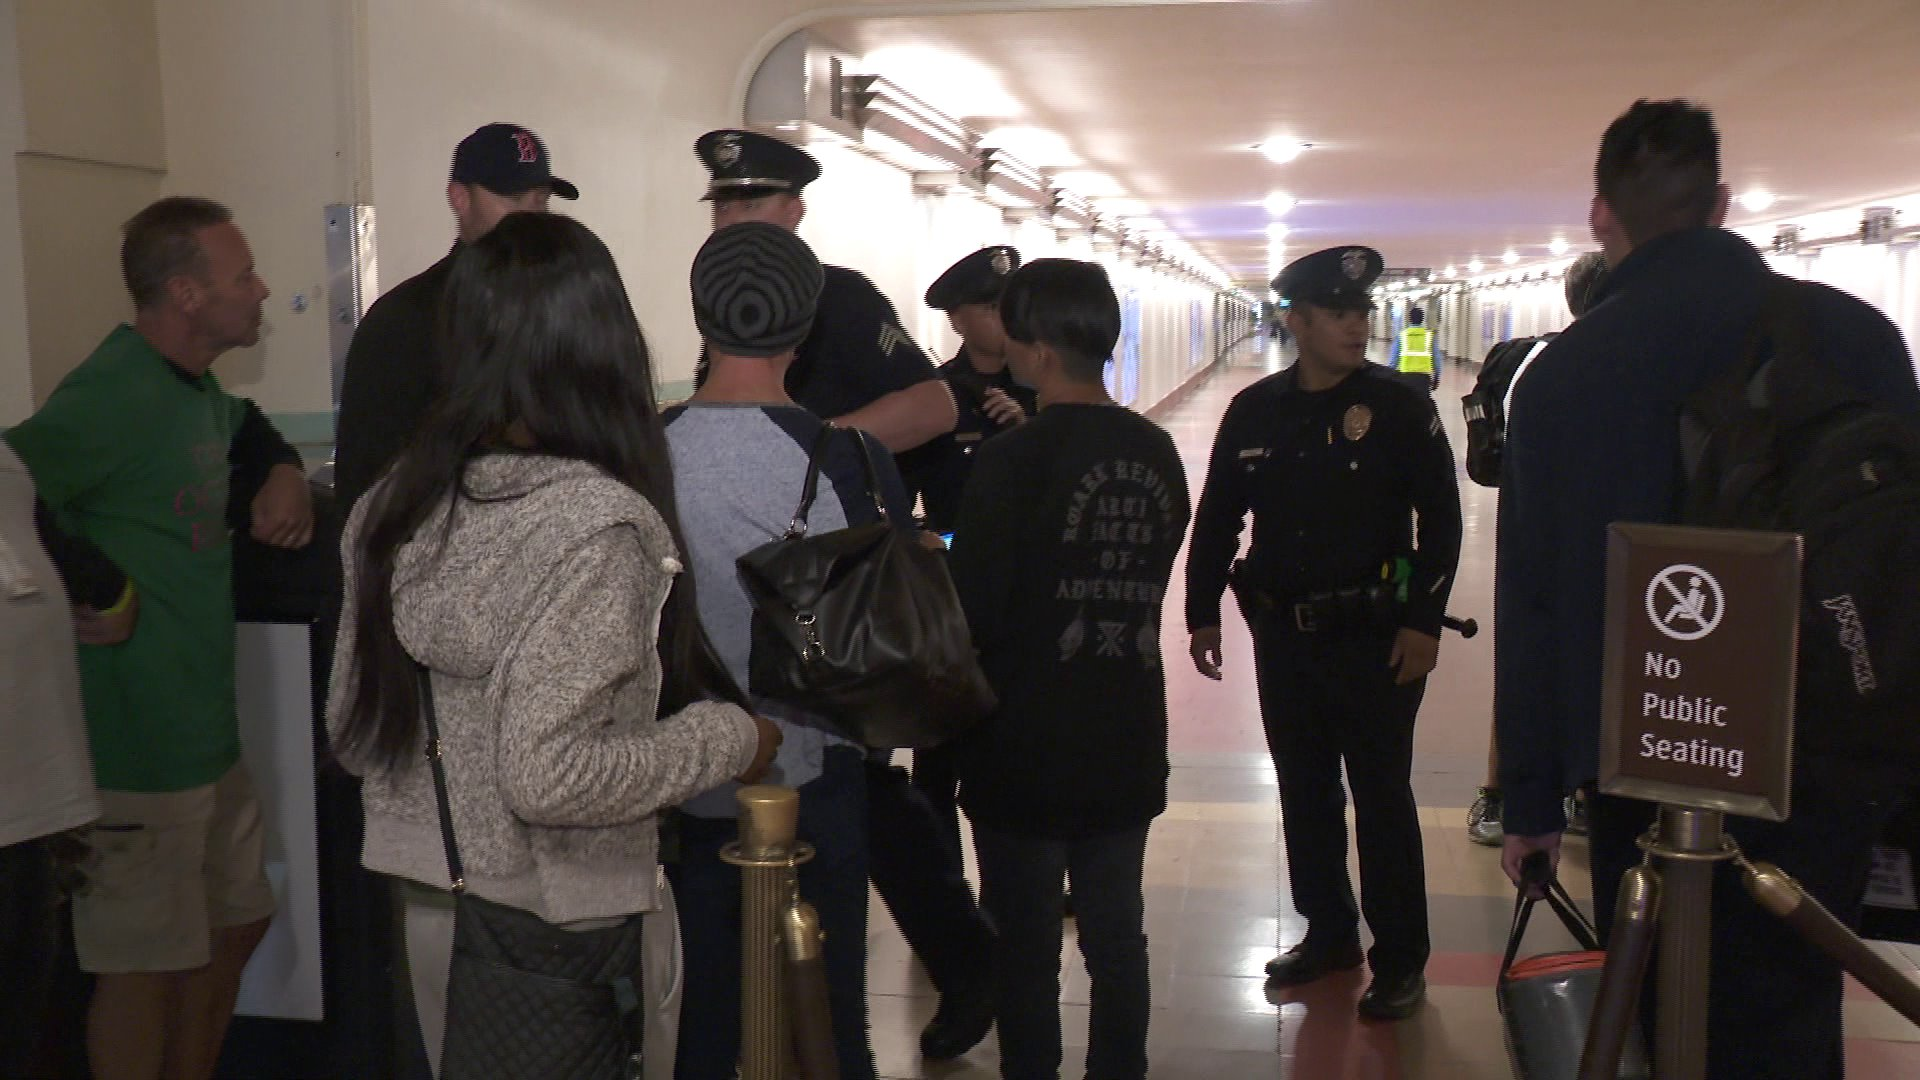 People walk through Union Station after a bomb scare at the transit hub on Oct. 28, 2018. (Credit: KTLA)